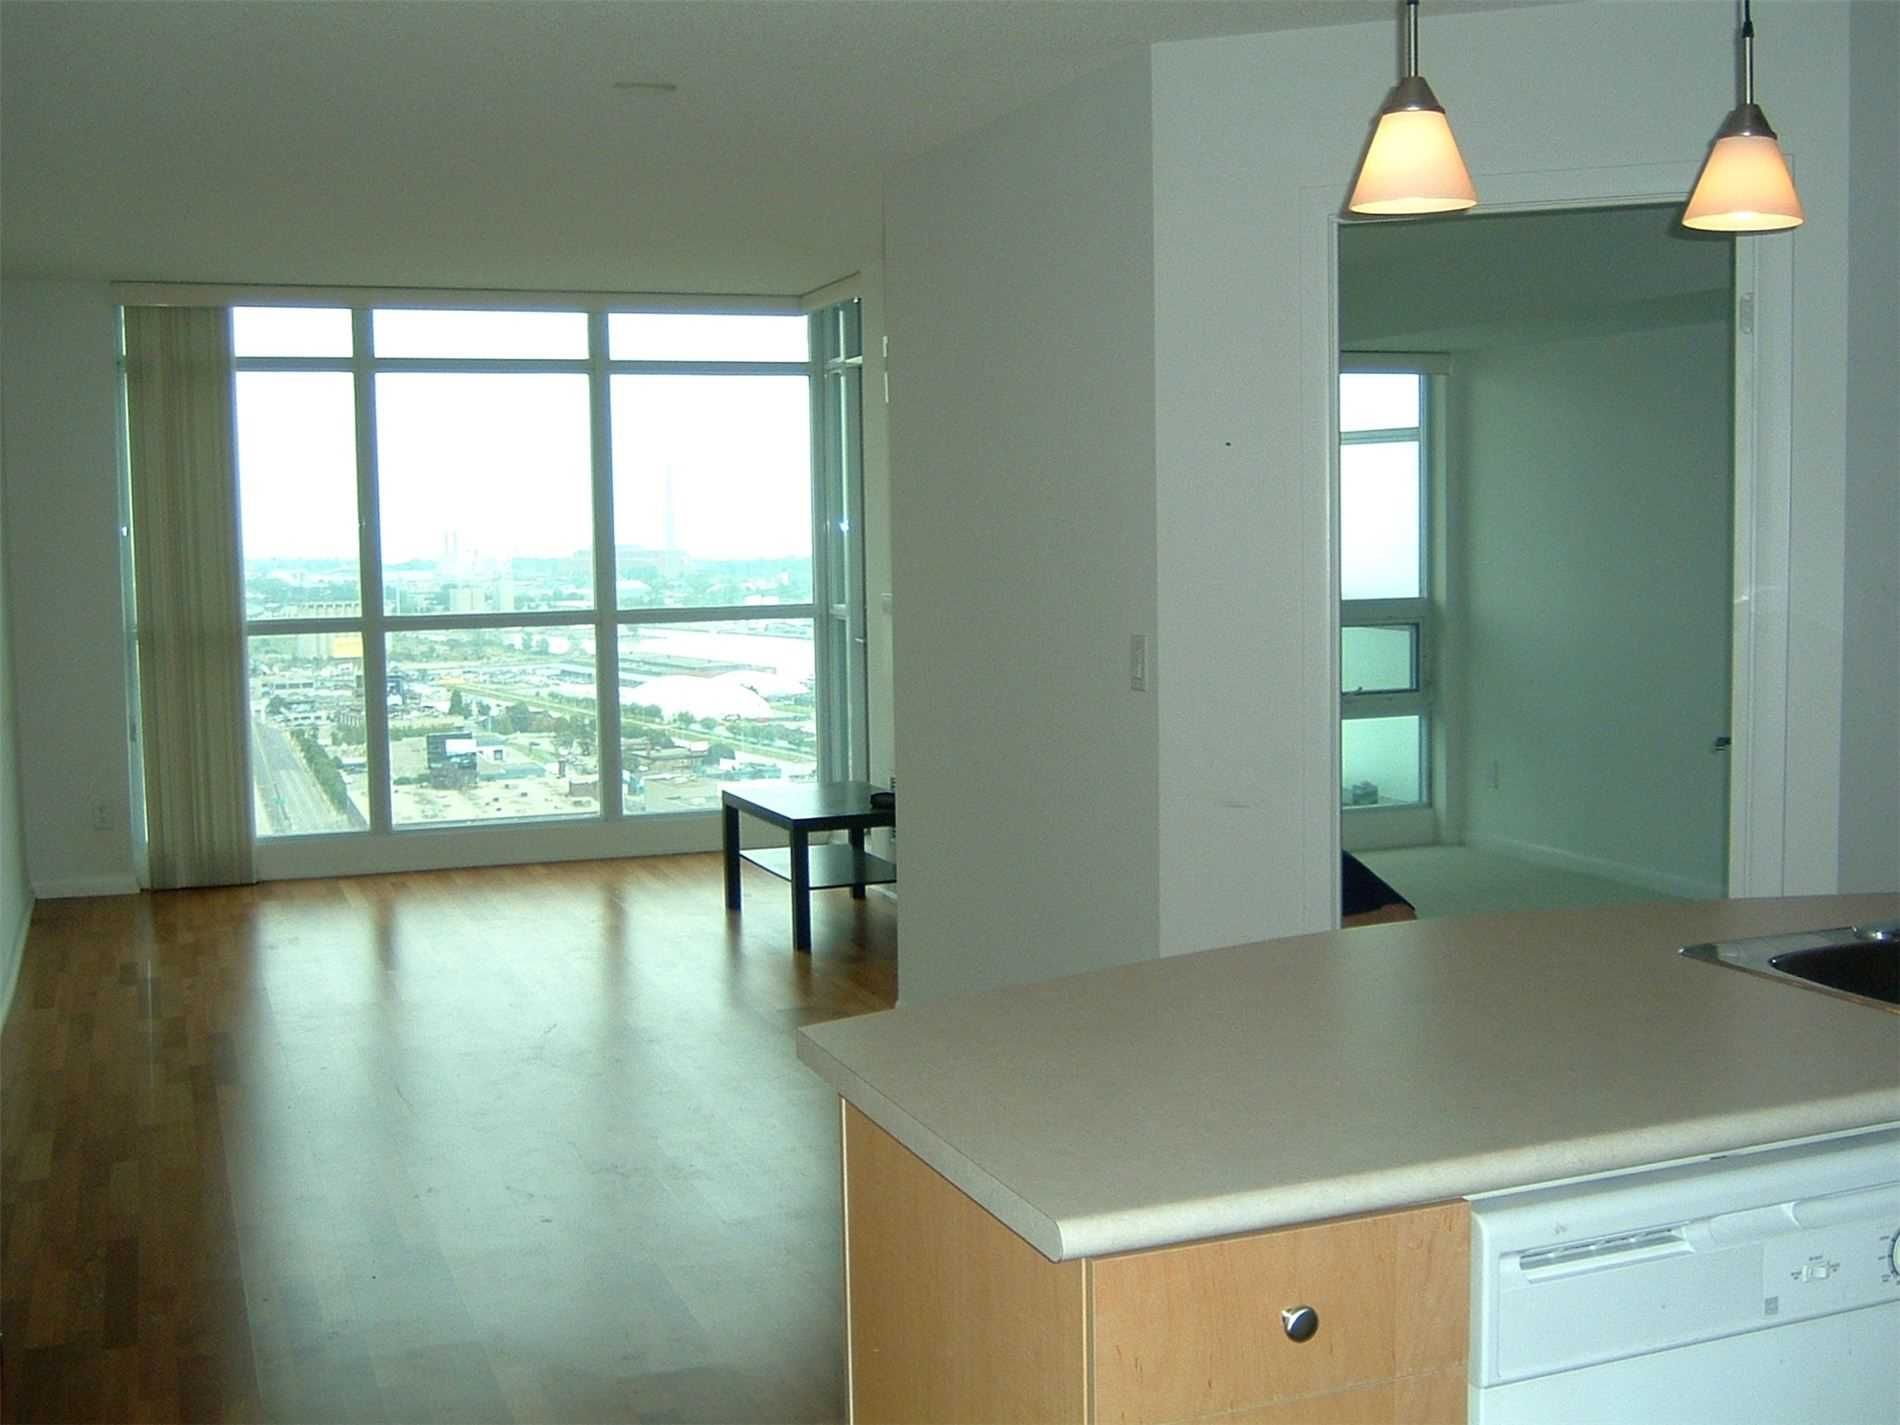 18 Yonge St, unit 3107 for rent in Toronto - image #2